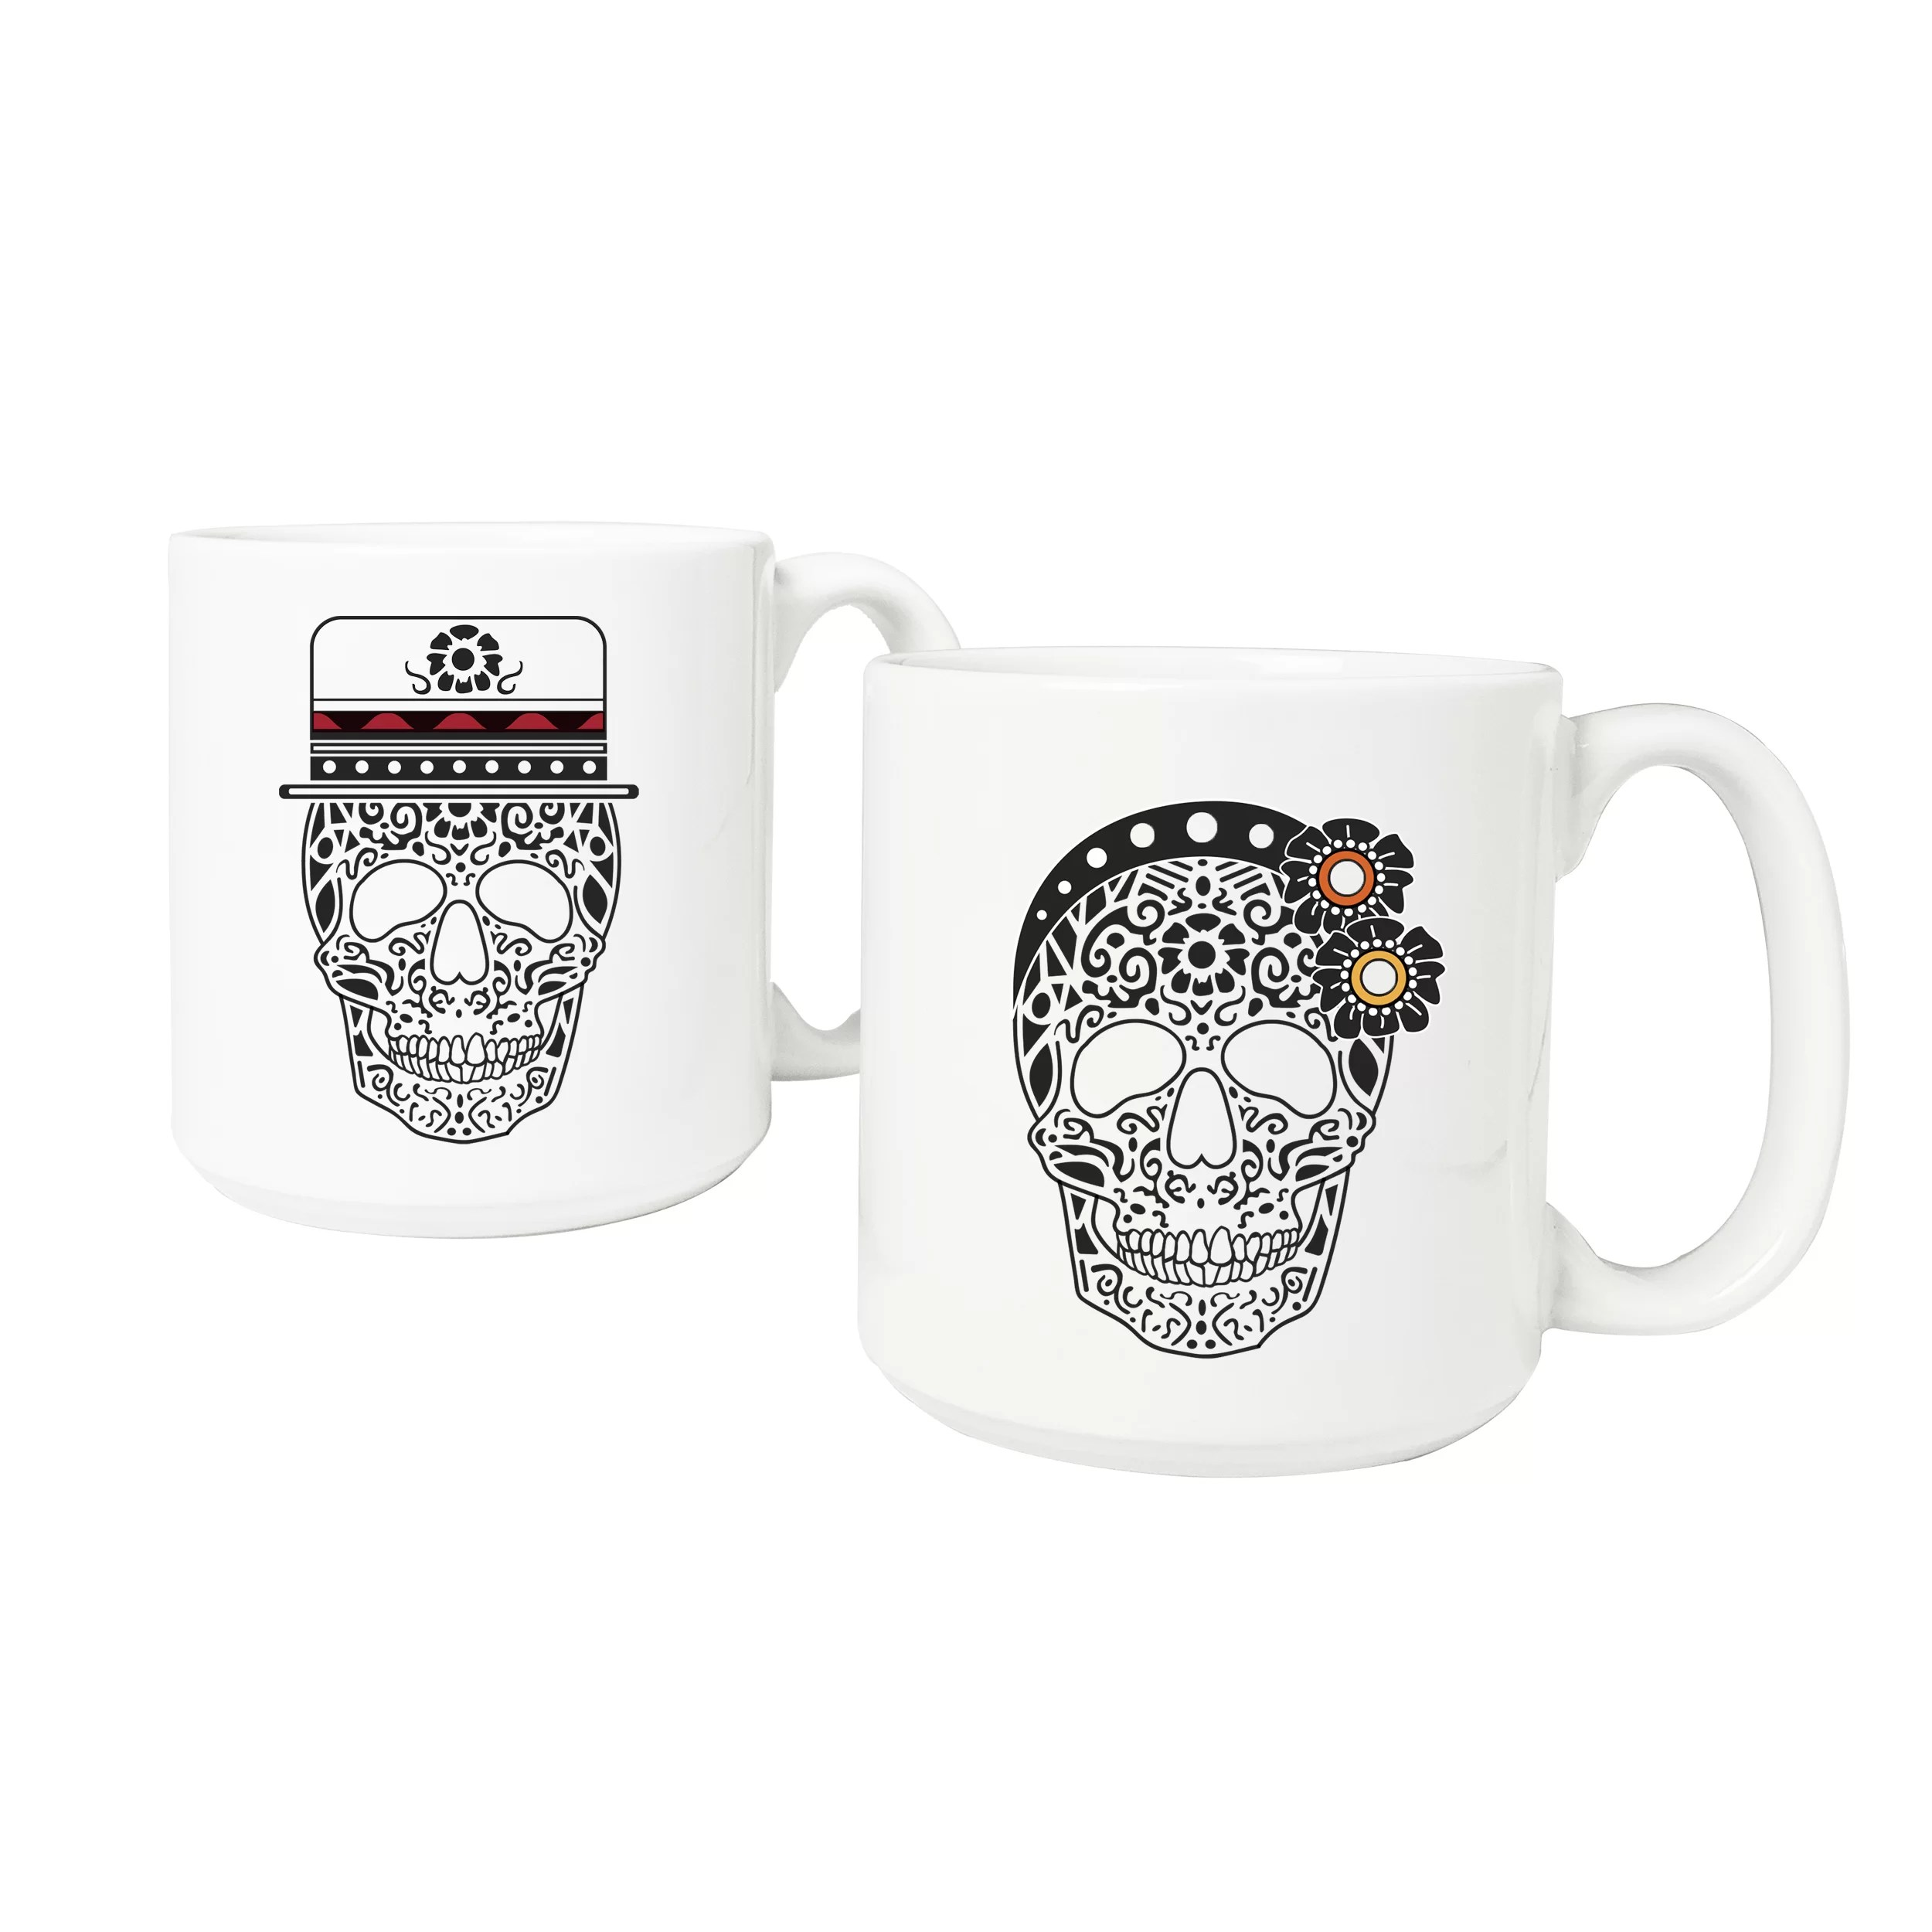 Tall Coffee Mug Sets Cathys Concepts His And Hers Sugar Skull Large 2 Piece